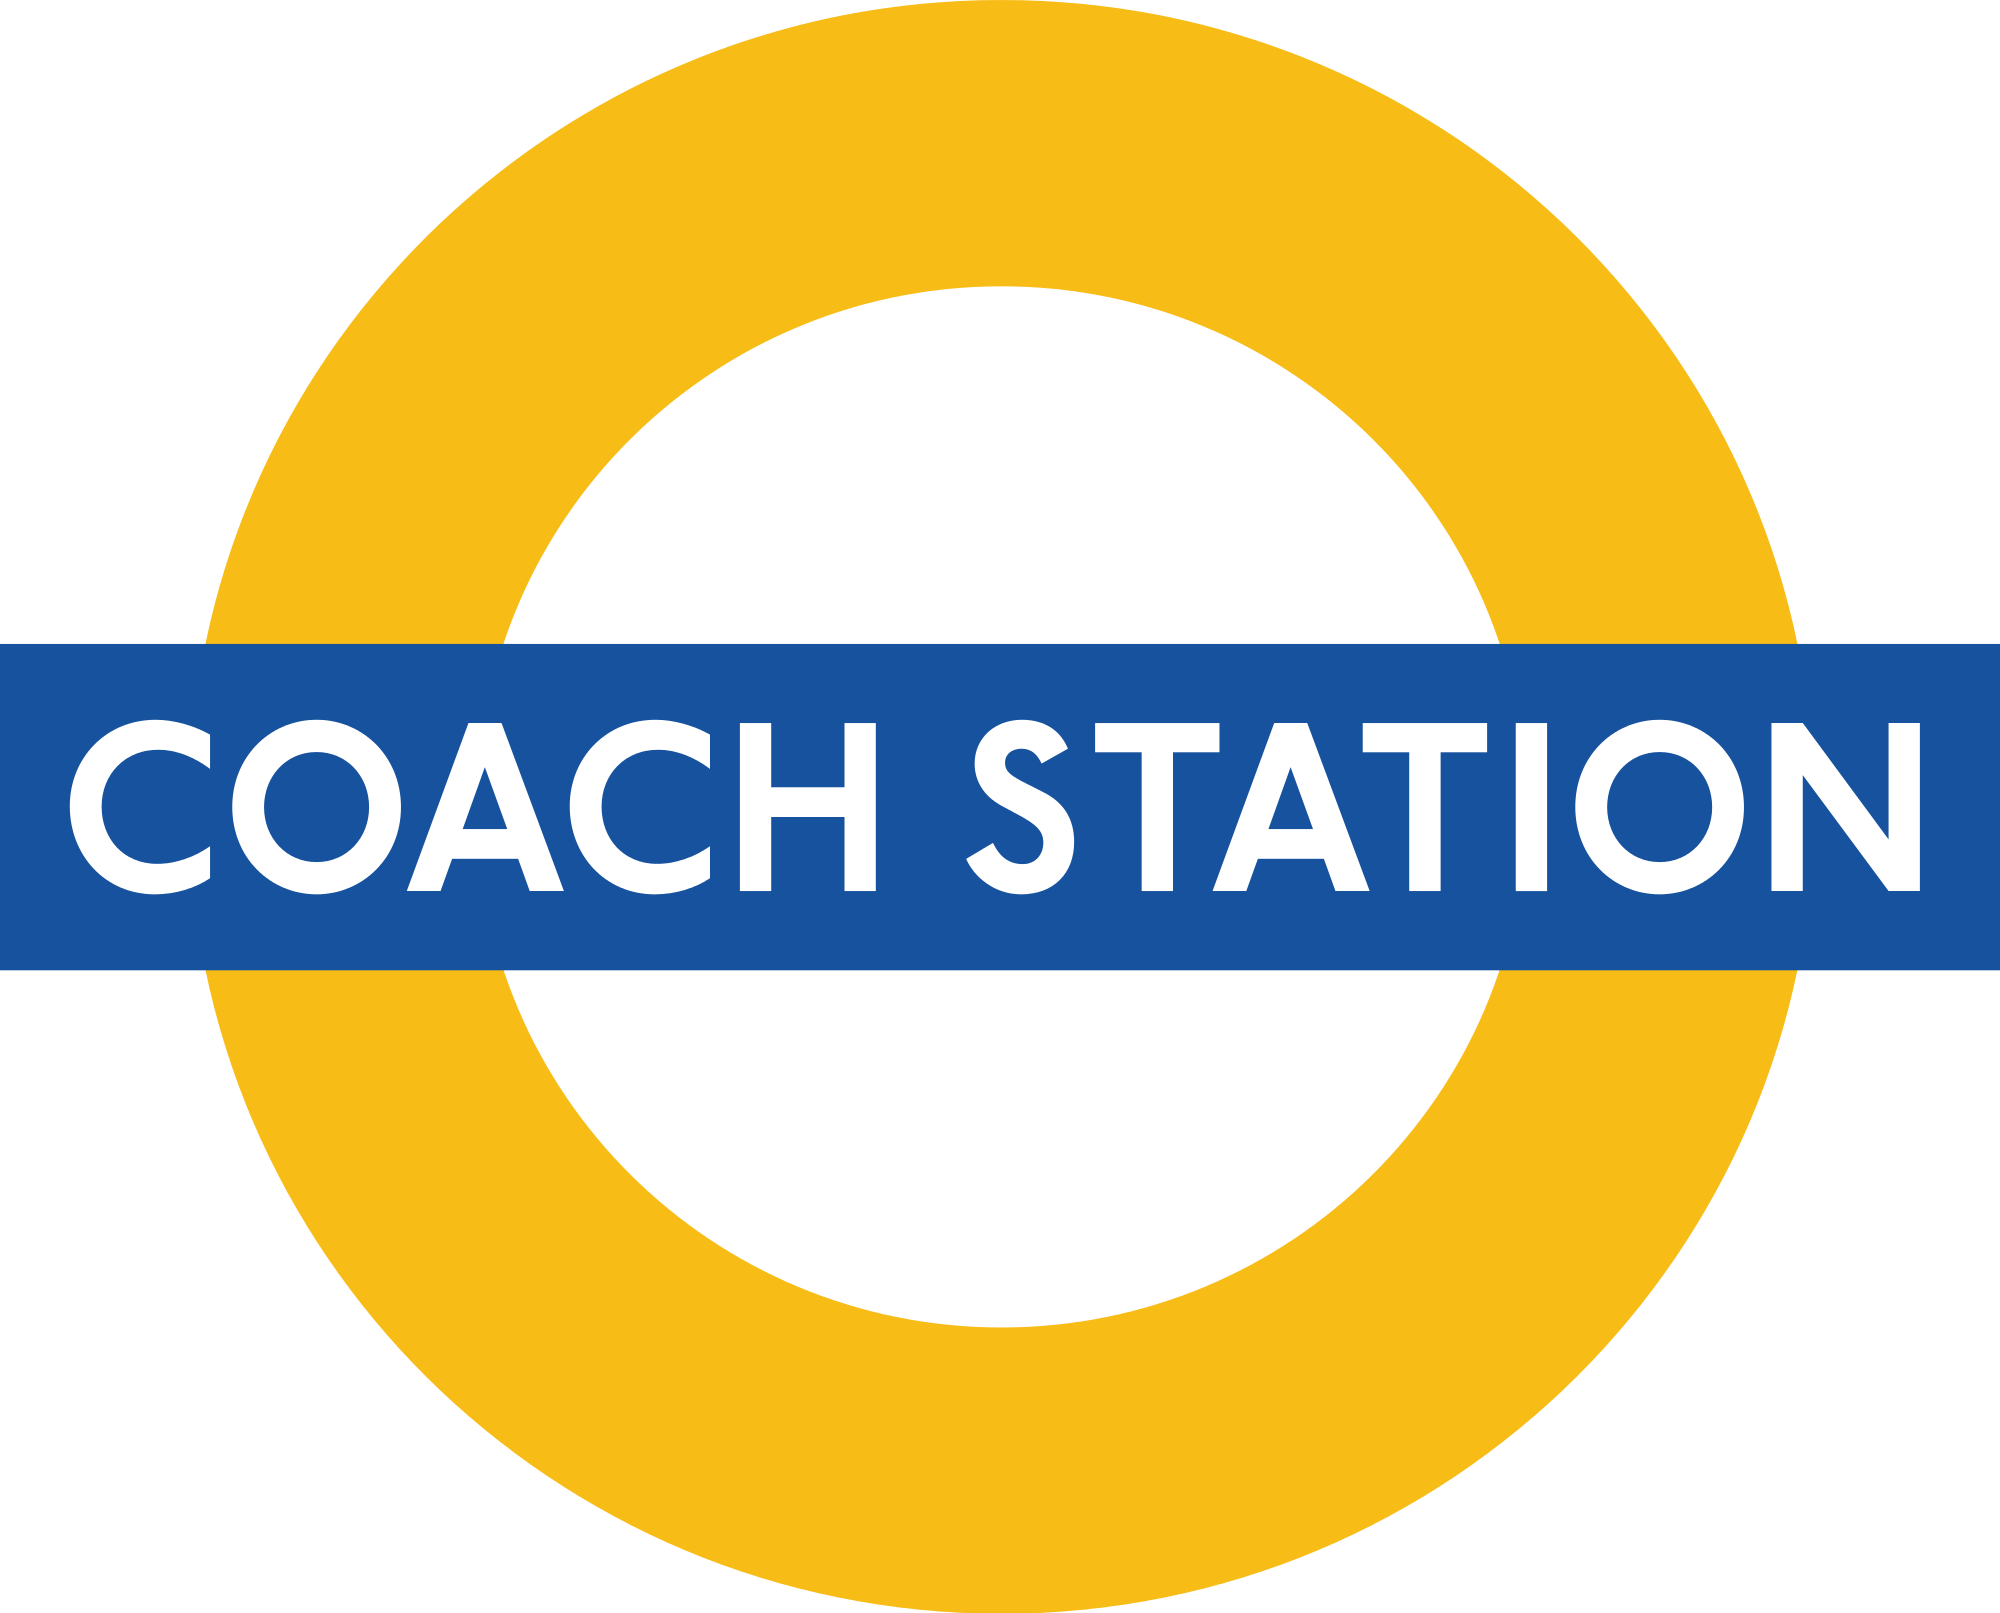 transport for london images coach station logo hd wallpaper and